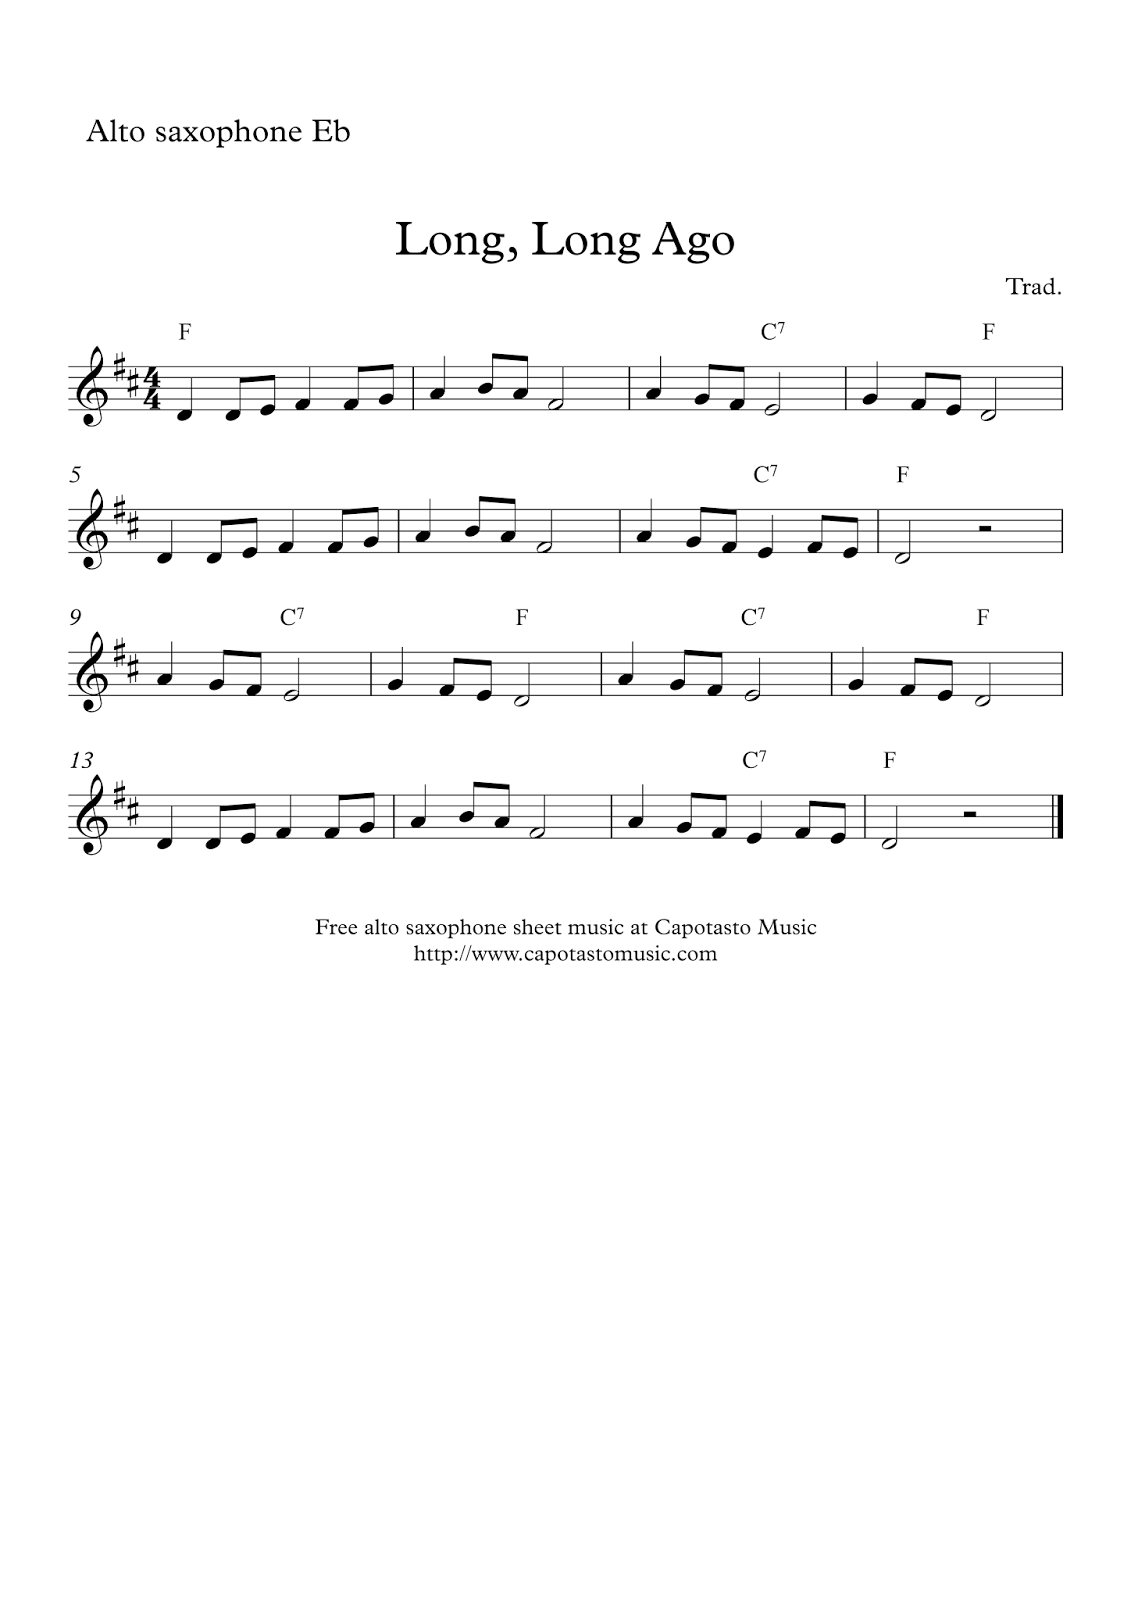 Dynamite image with free printable alto saxophone sheet music